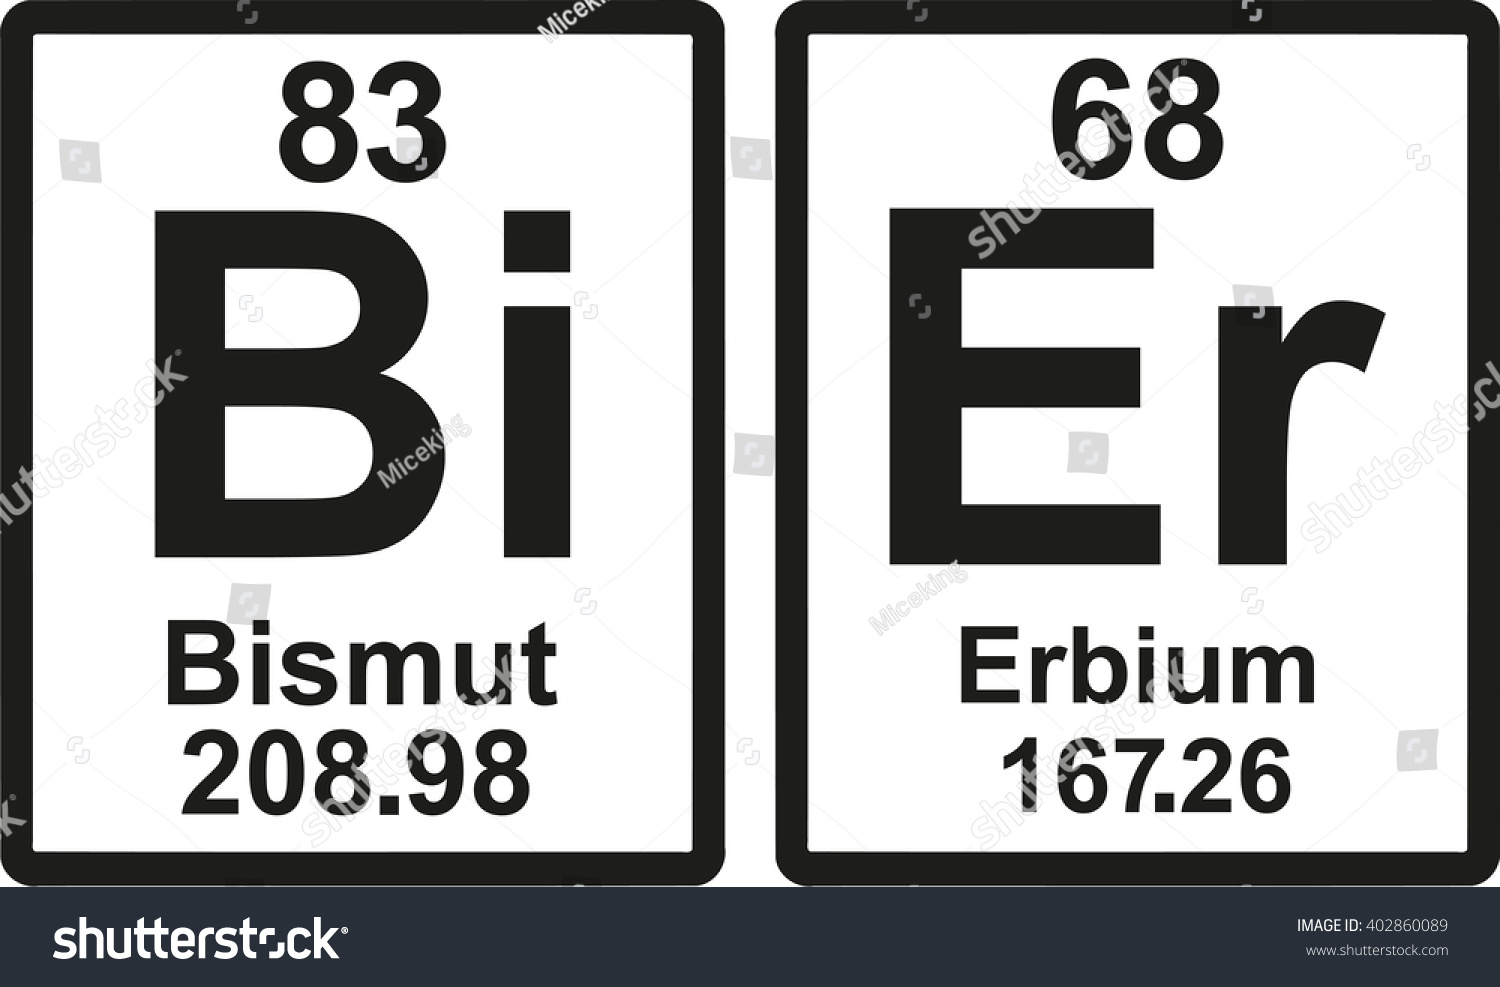 Periodic table jokes puns images periodic table images periodic table humor image collections periodic table images periodic table jokes puns gallery periodic table images gamestrikefo Image collections